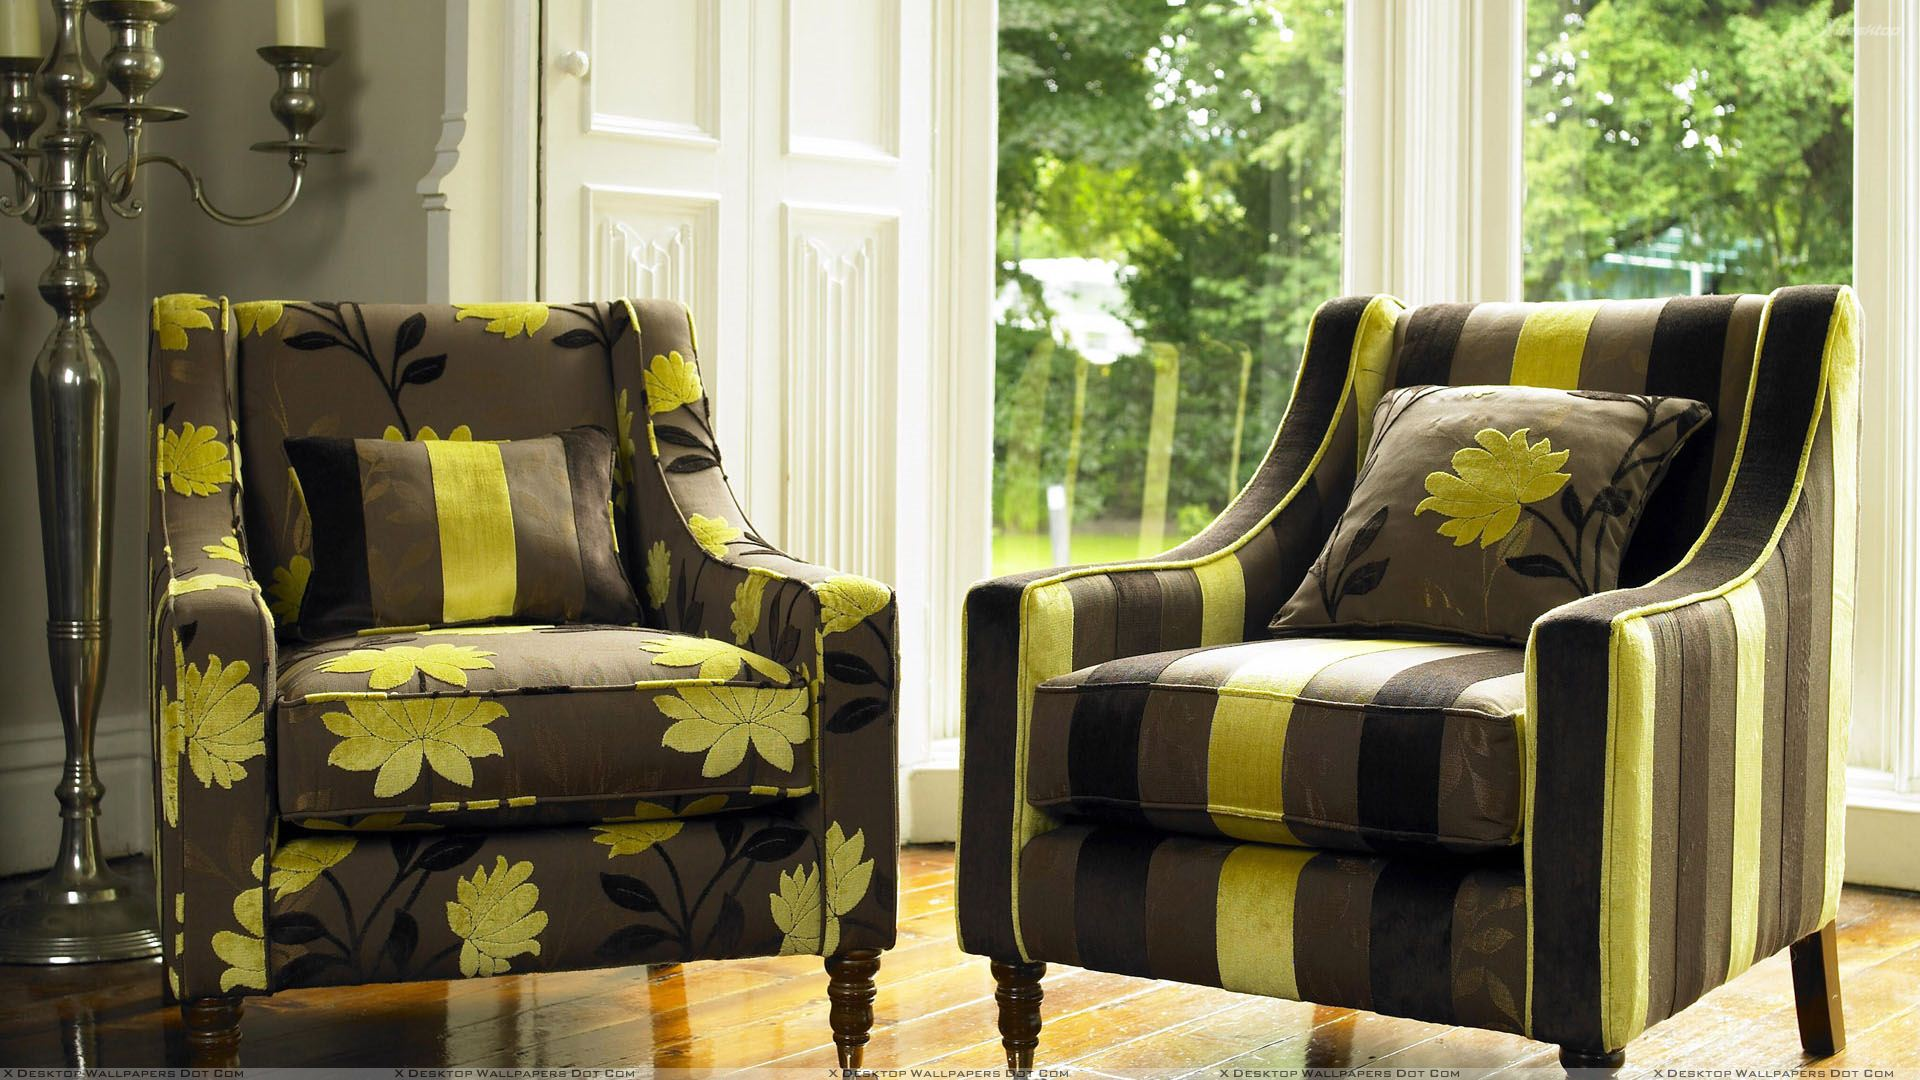 Superb Lining And Flower Print Sofa Set In Brown And Yellow Color Dailytribune Chair Design For Home Dailytribuneorg